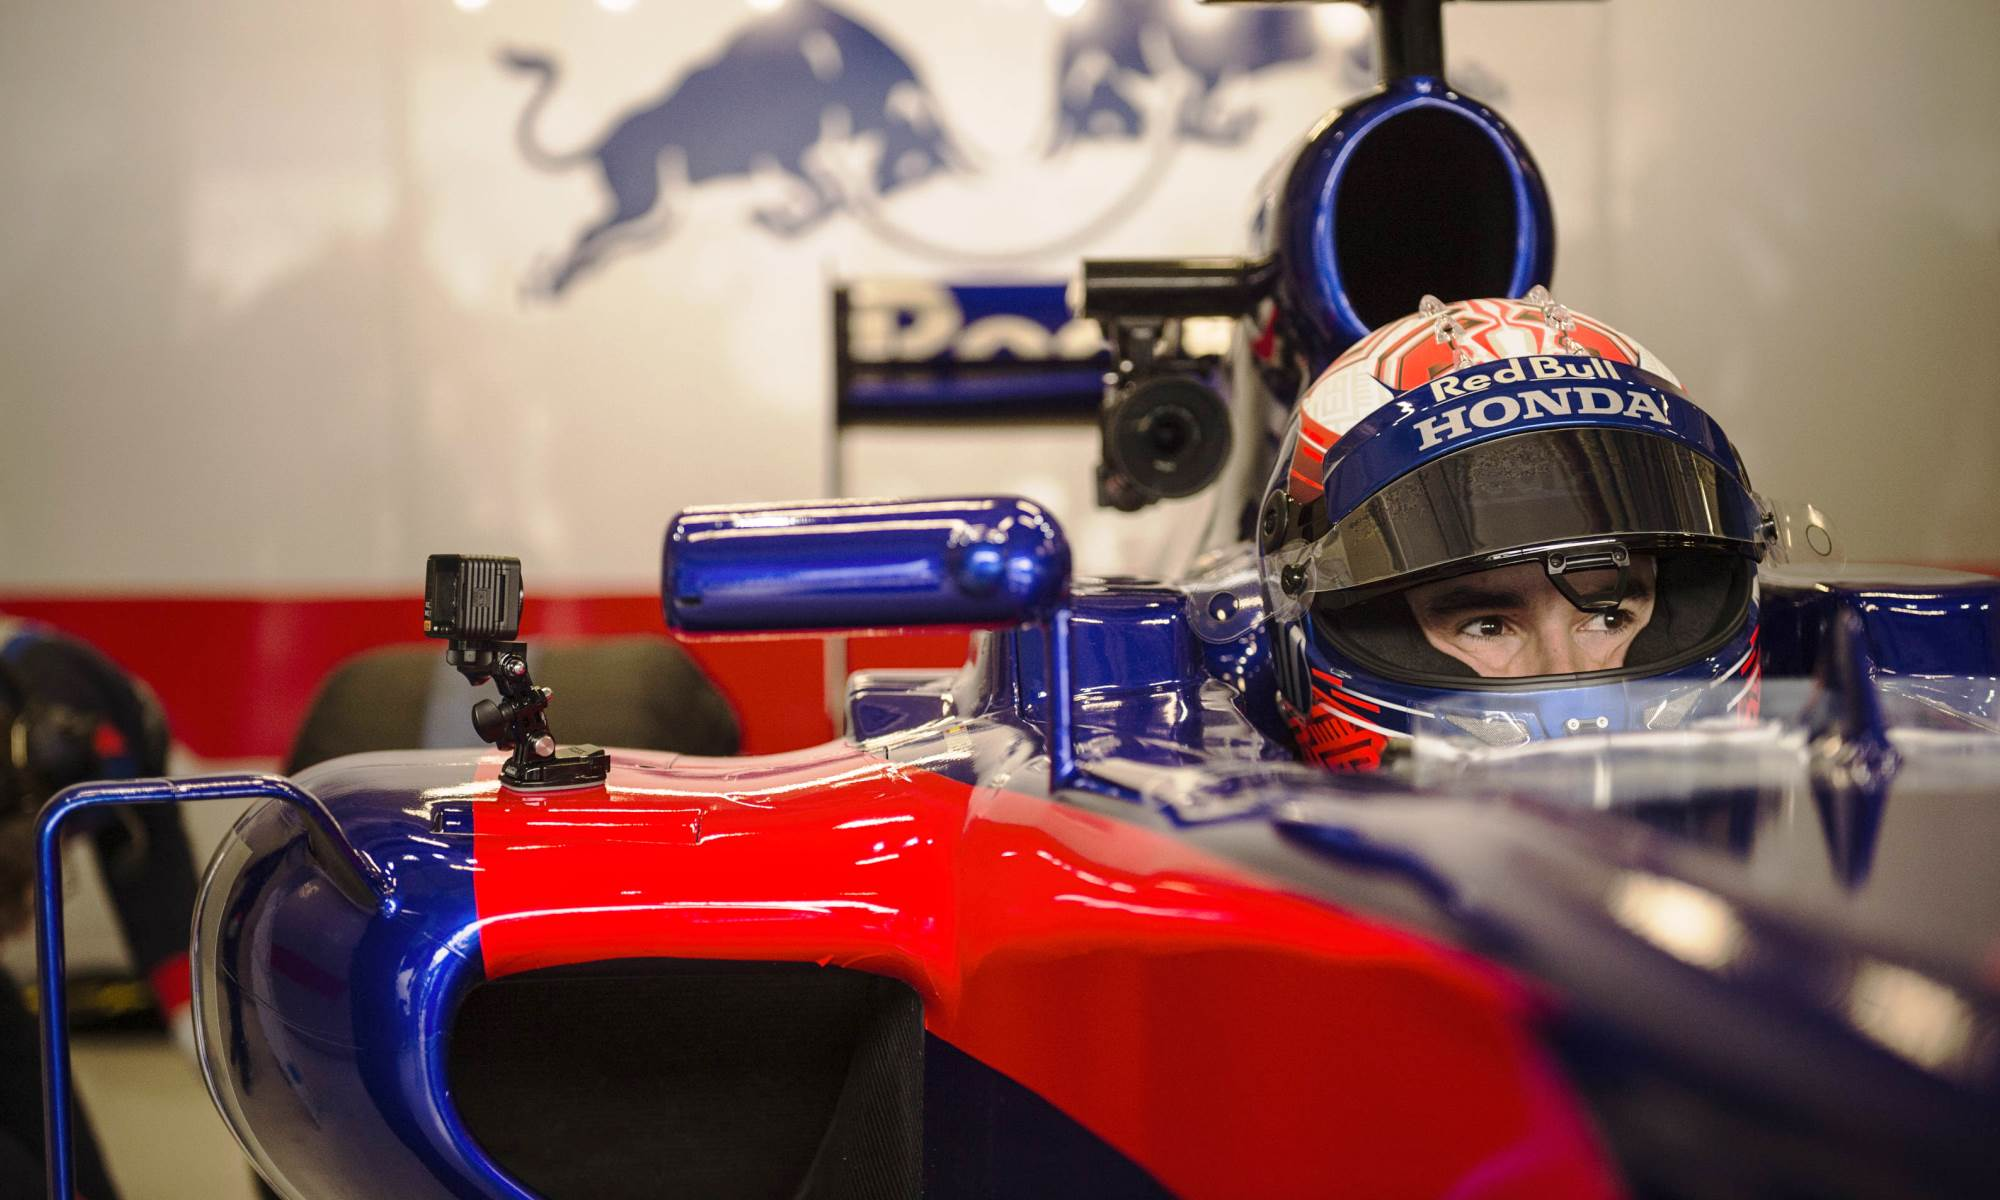 MotoGP champ tests Toro Rosso F1 car